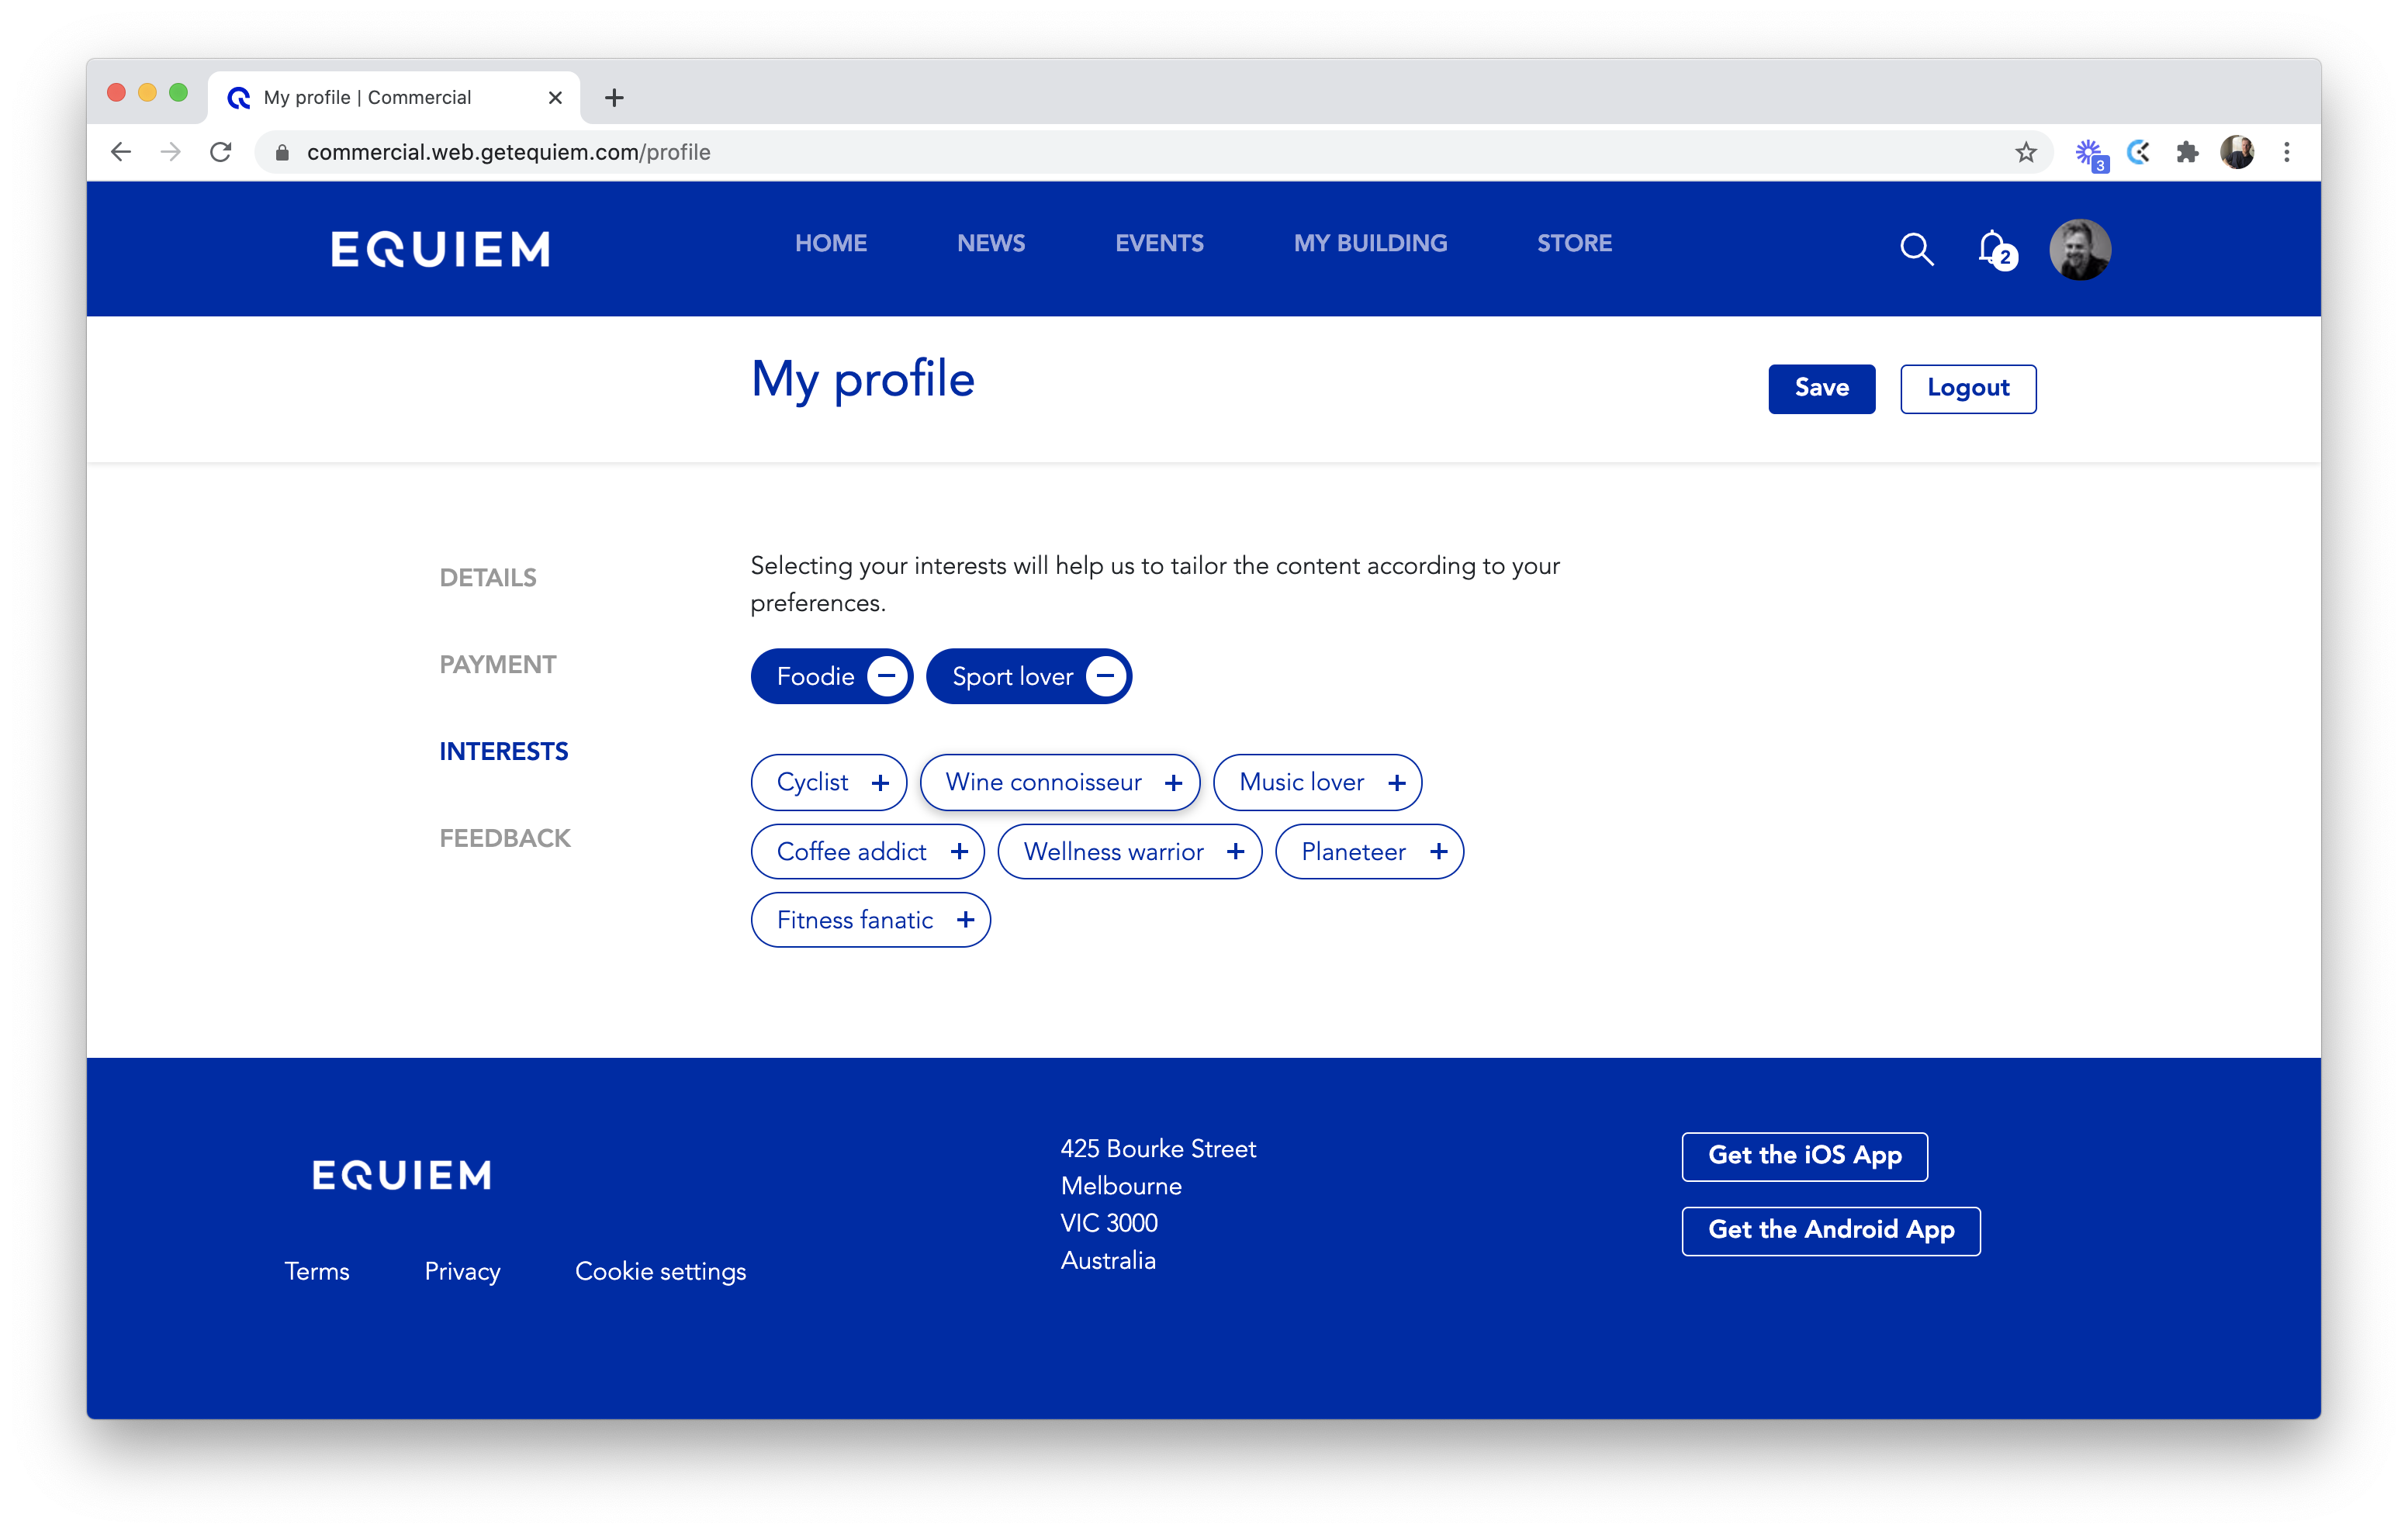 The 'interests' section of the Equiem tenant experience platform.